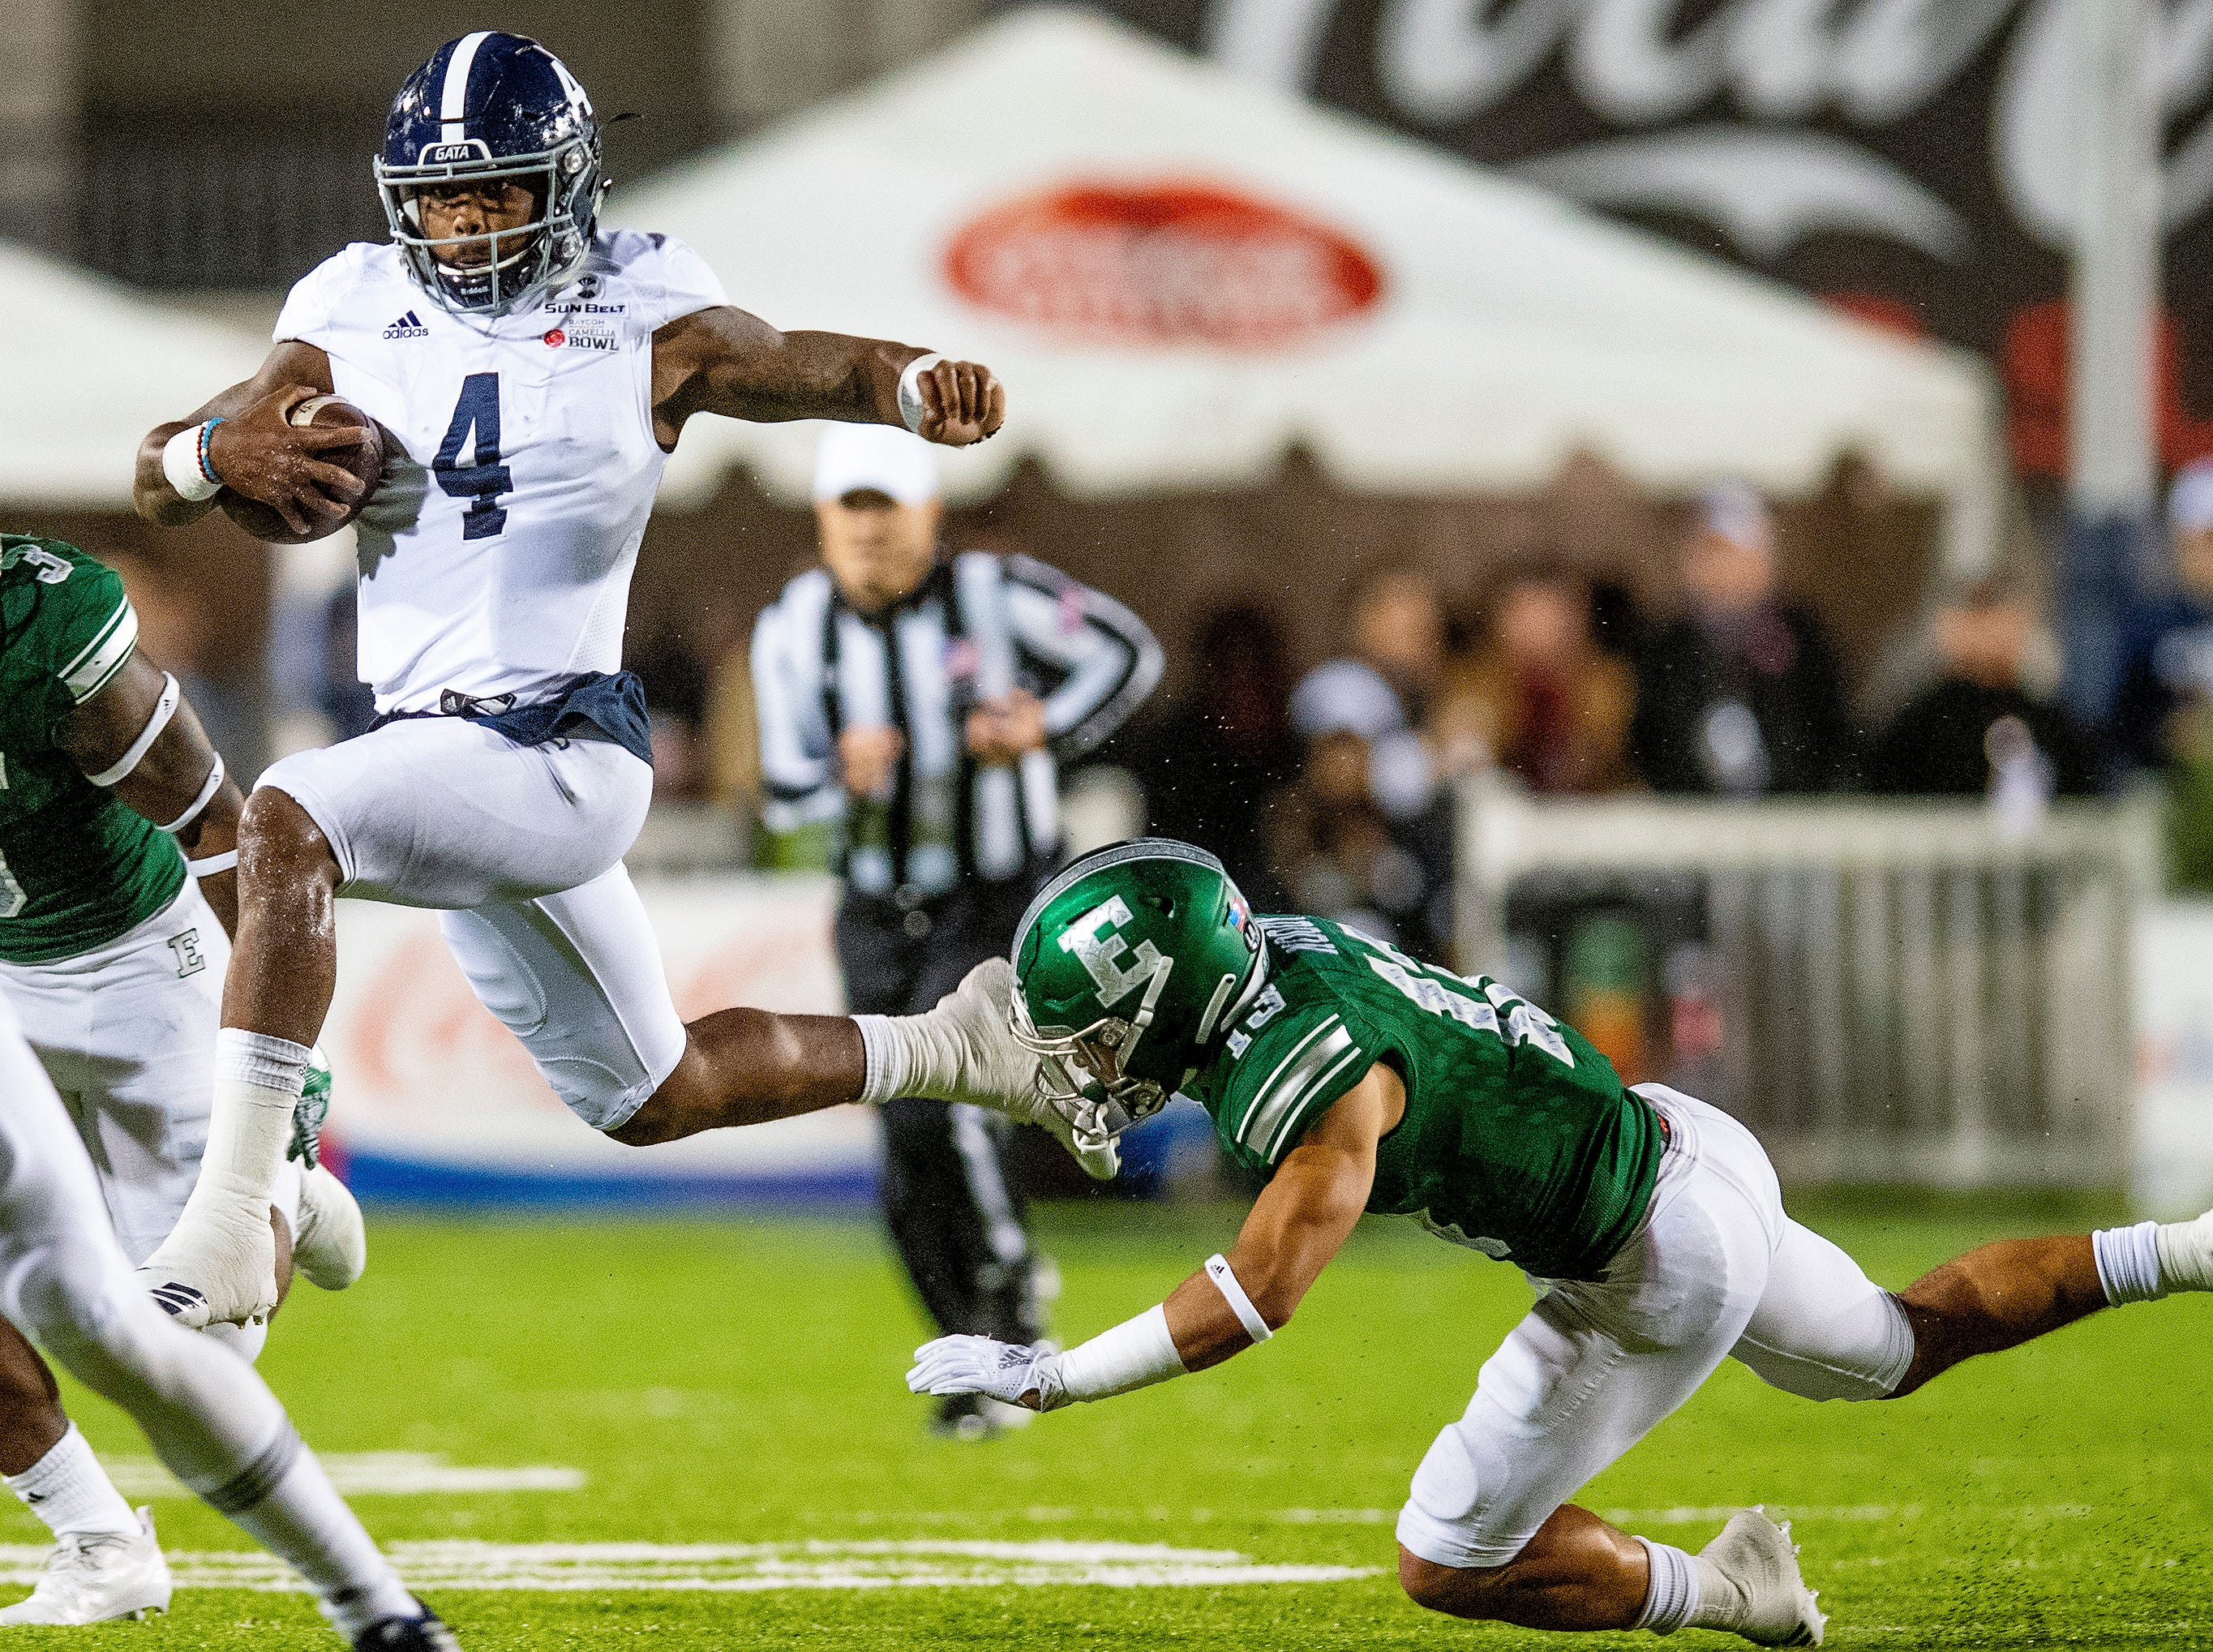 Georgia Southern quarterback Shai Werts (4) breaks free for a long gain against Eastern Michigan defensive back Justin Moody (13) during first half action in the Raycom Media  Camellia Bowl held at Cramton Bowl in Montgomery, Ala., on Saturday December 15, 2018.